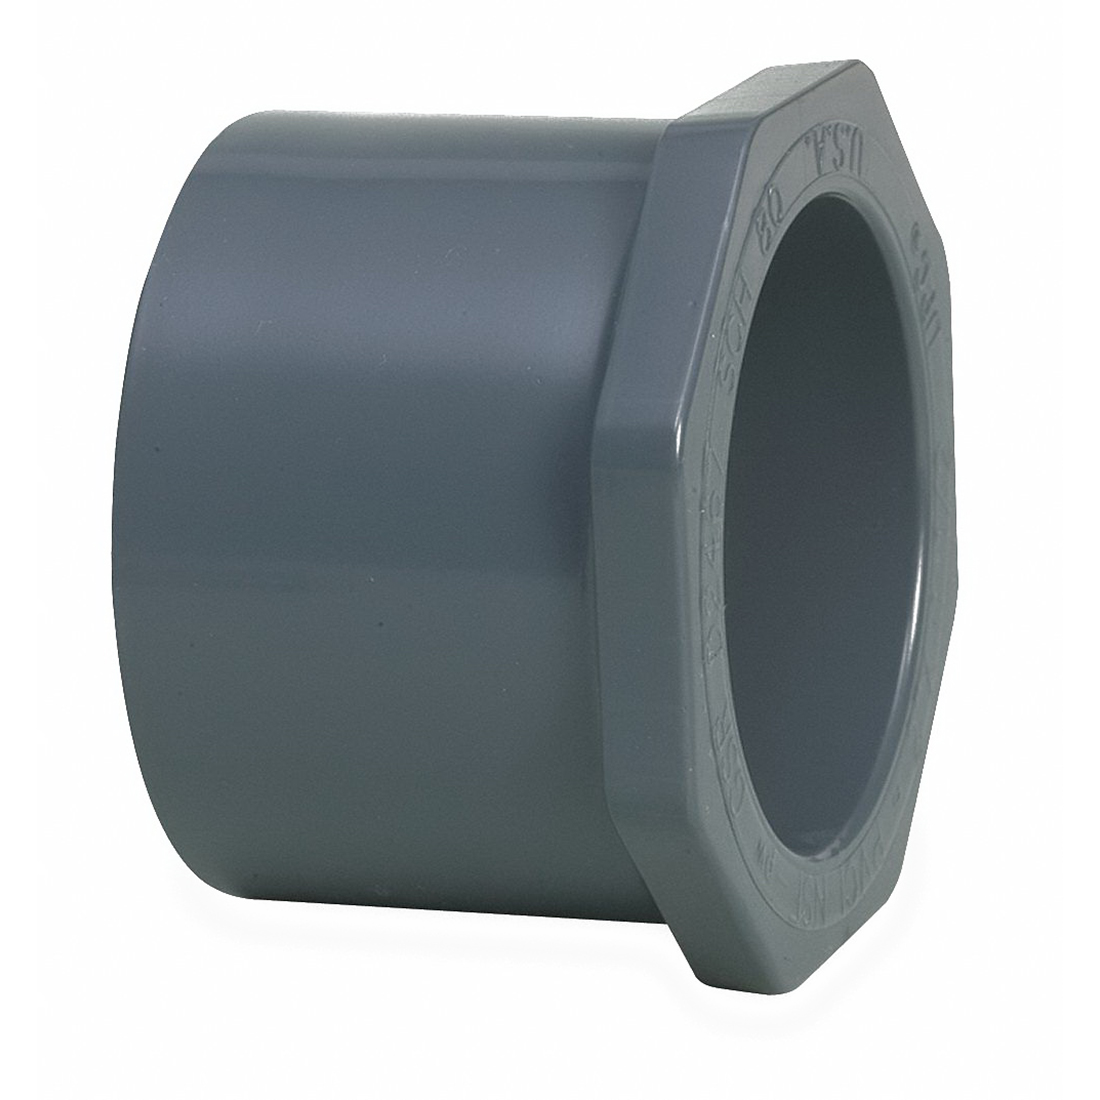 Gray CPVC SCH 80 Reducer Bushing, 1 in x 1/2 in, Spigot x Socket